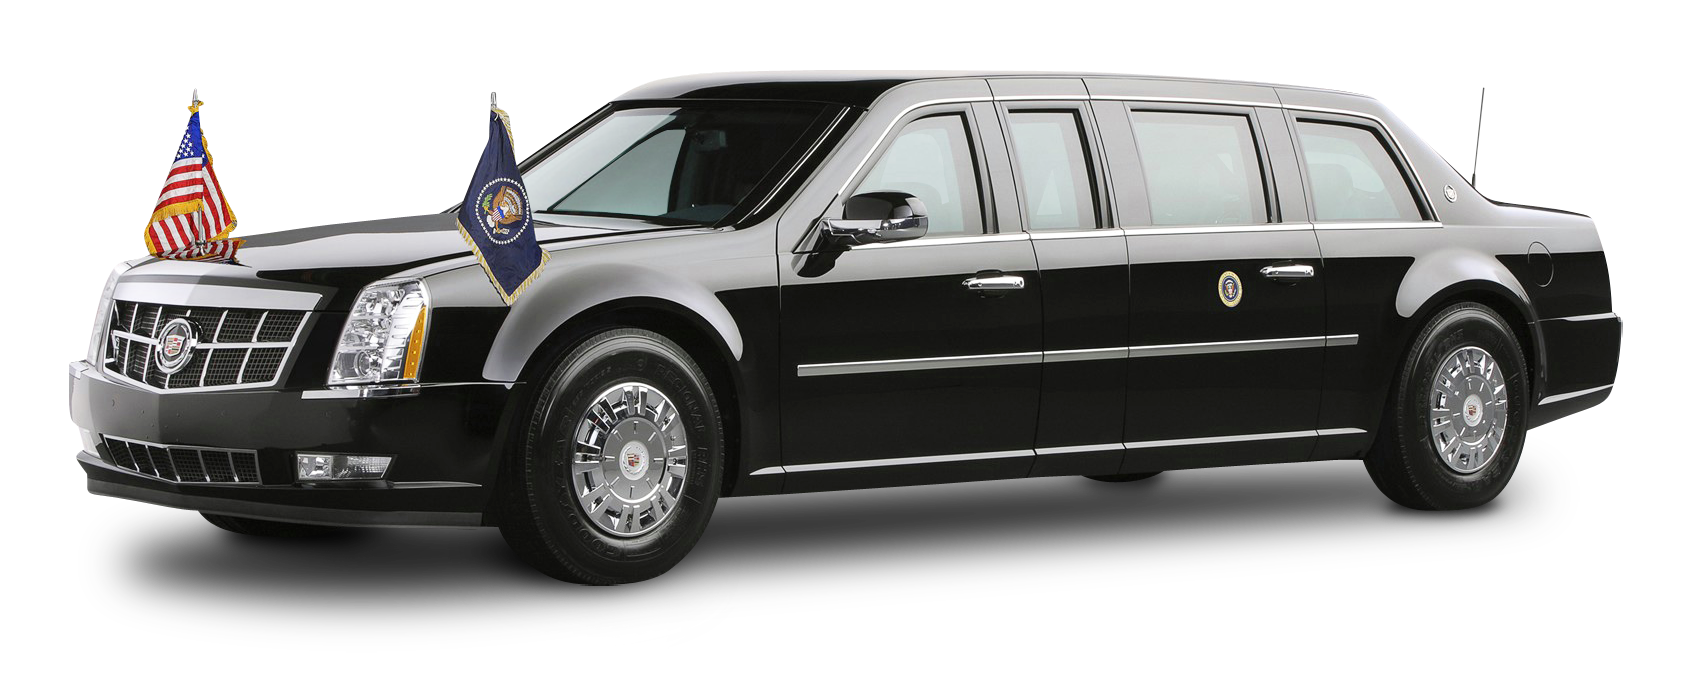 Cadillac Presidential Limousine PNG Image